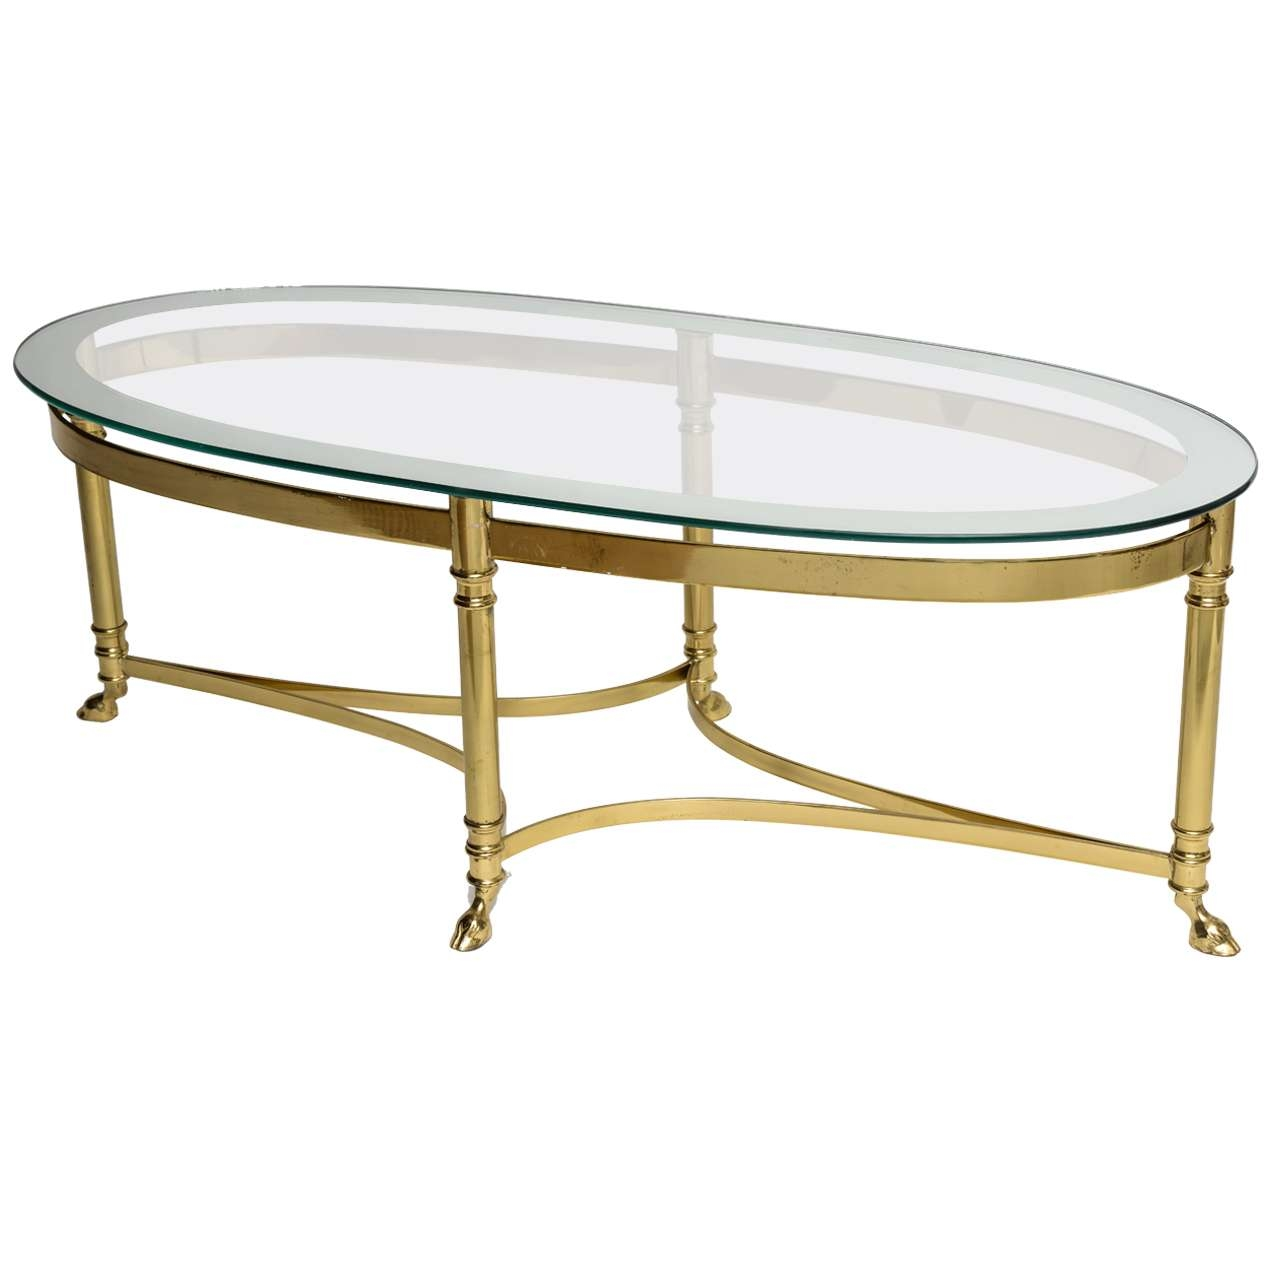 Newest Vintage Glass Coffee Tables With Coffee Table: Stunning Oval Glass Coffee Table Ideas Small Coffee (View 11 of 20)